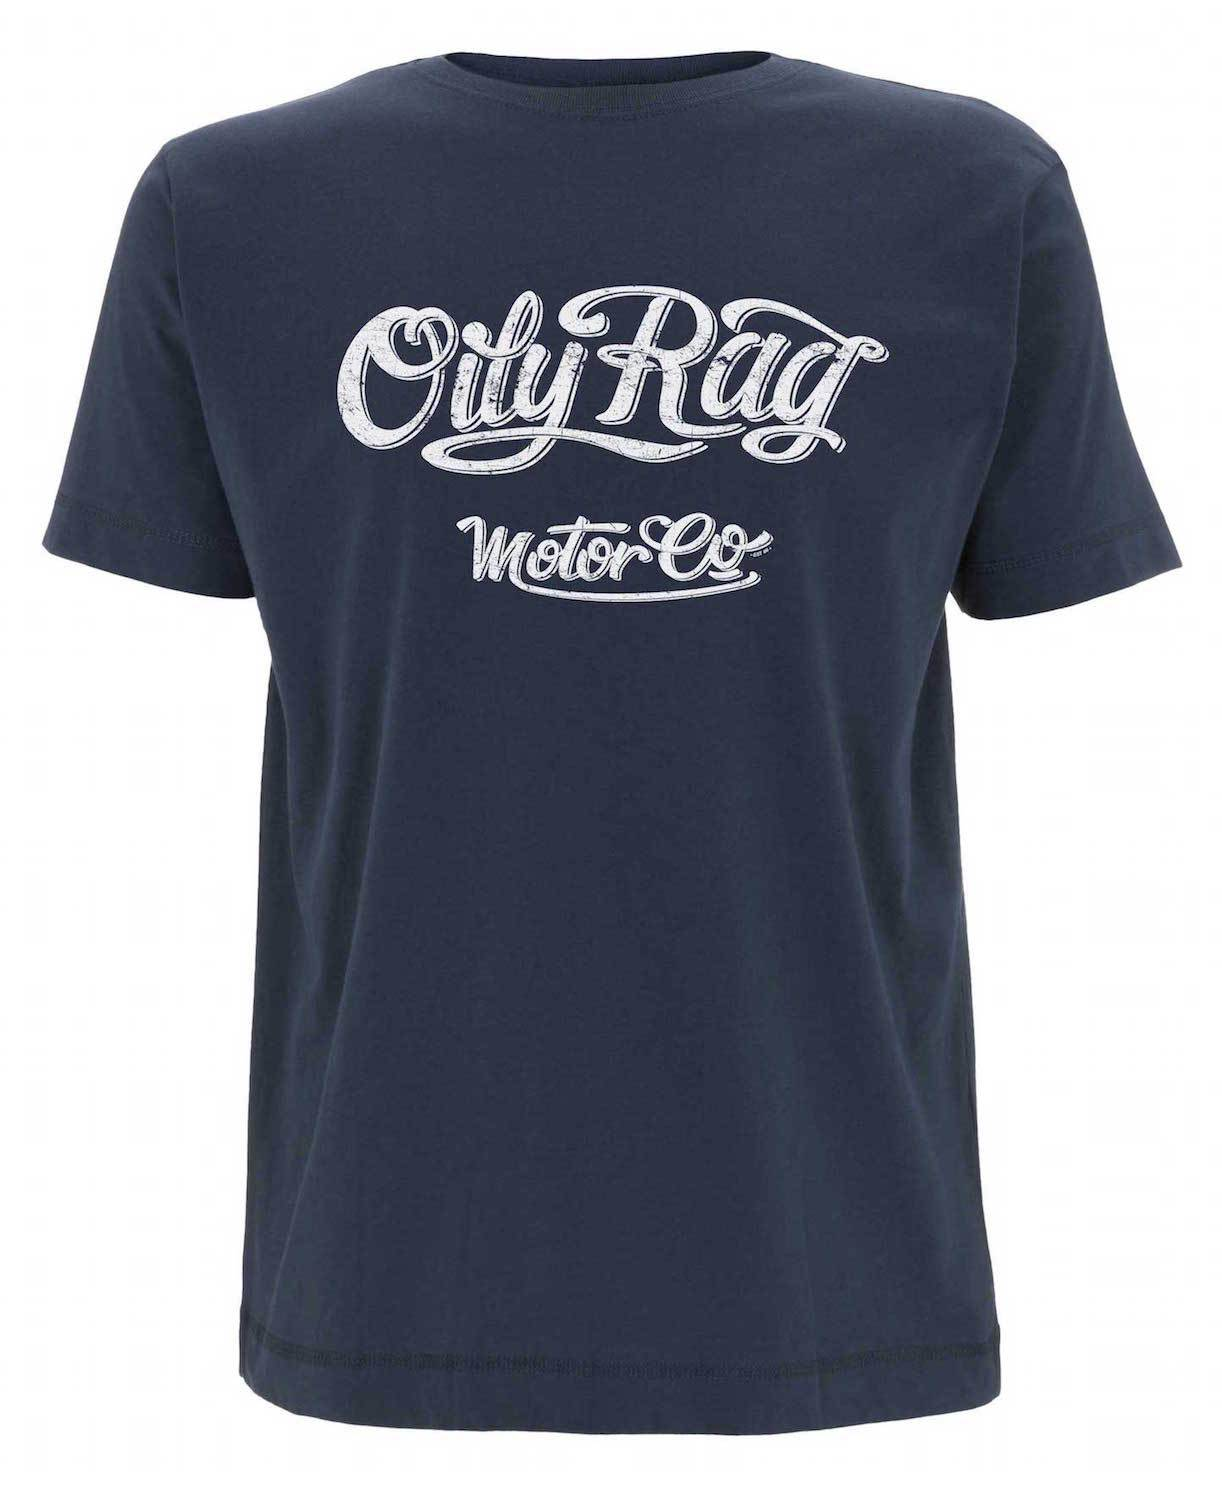 Oily Rag Clothing - Oily Rag Clothing Motor Co T'Shirt - T-Shirts - Salt Flats Clothing